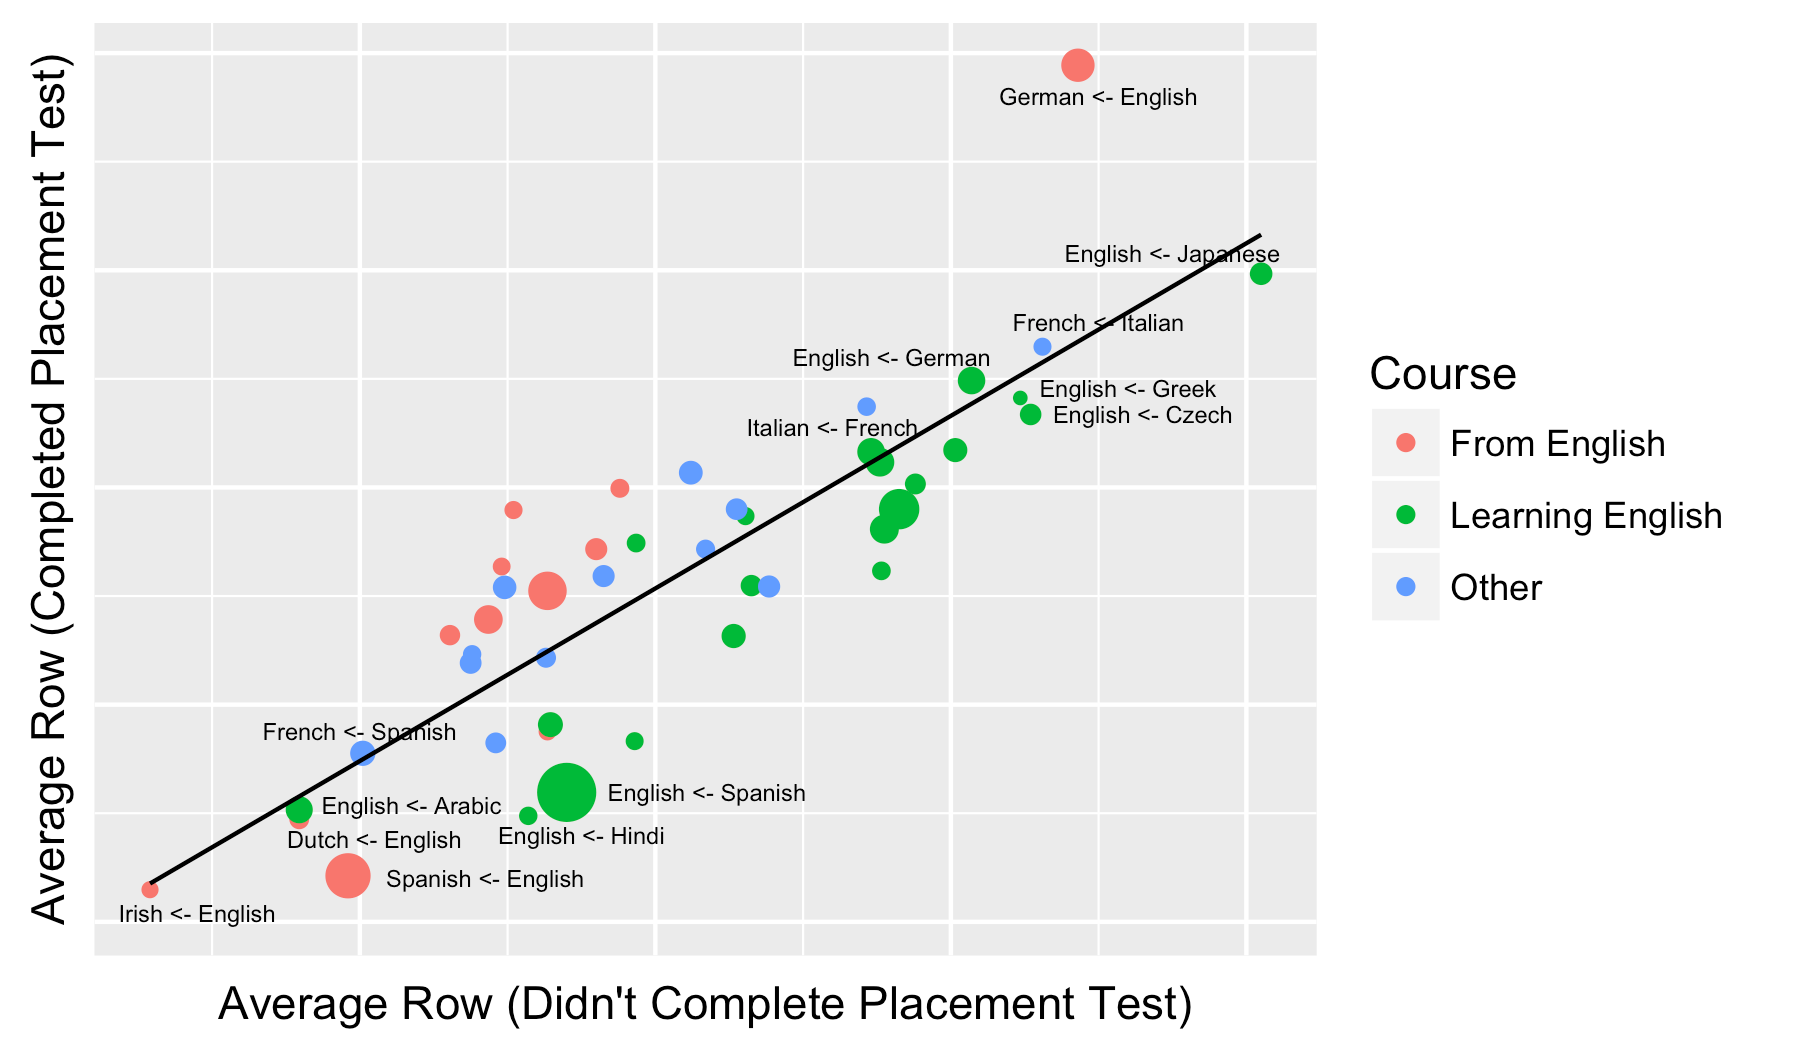 The average max row for users who completed the placement test versus the average max row for users who didn't complete the placement test